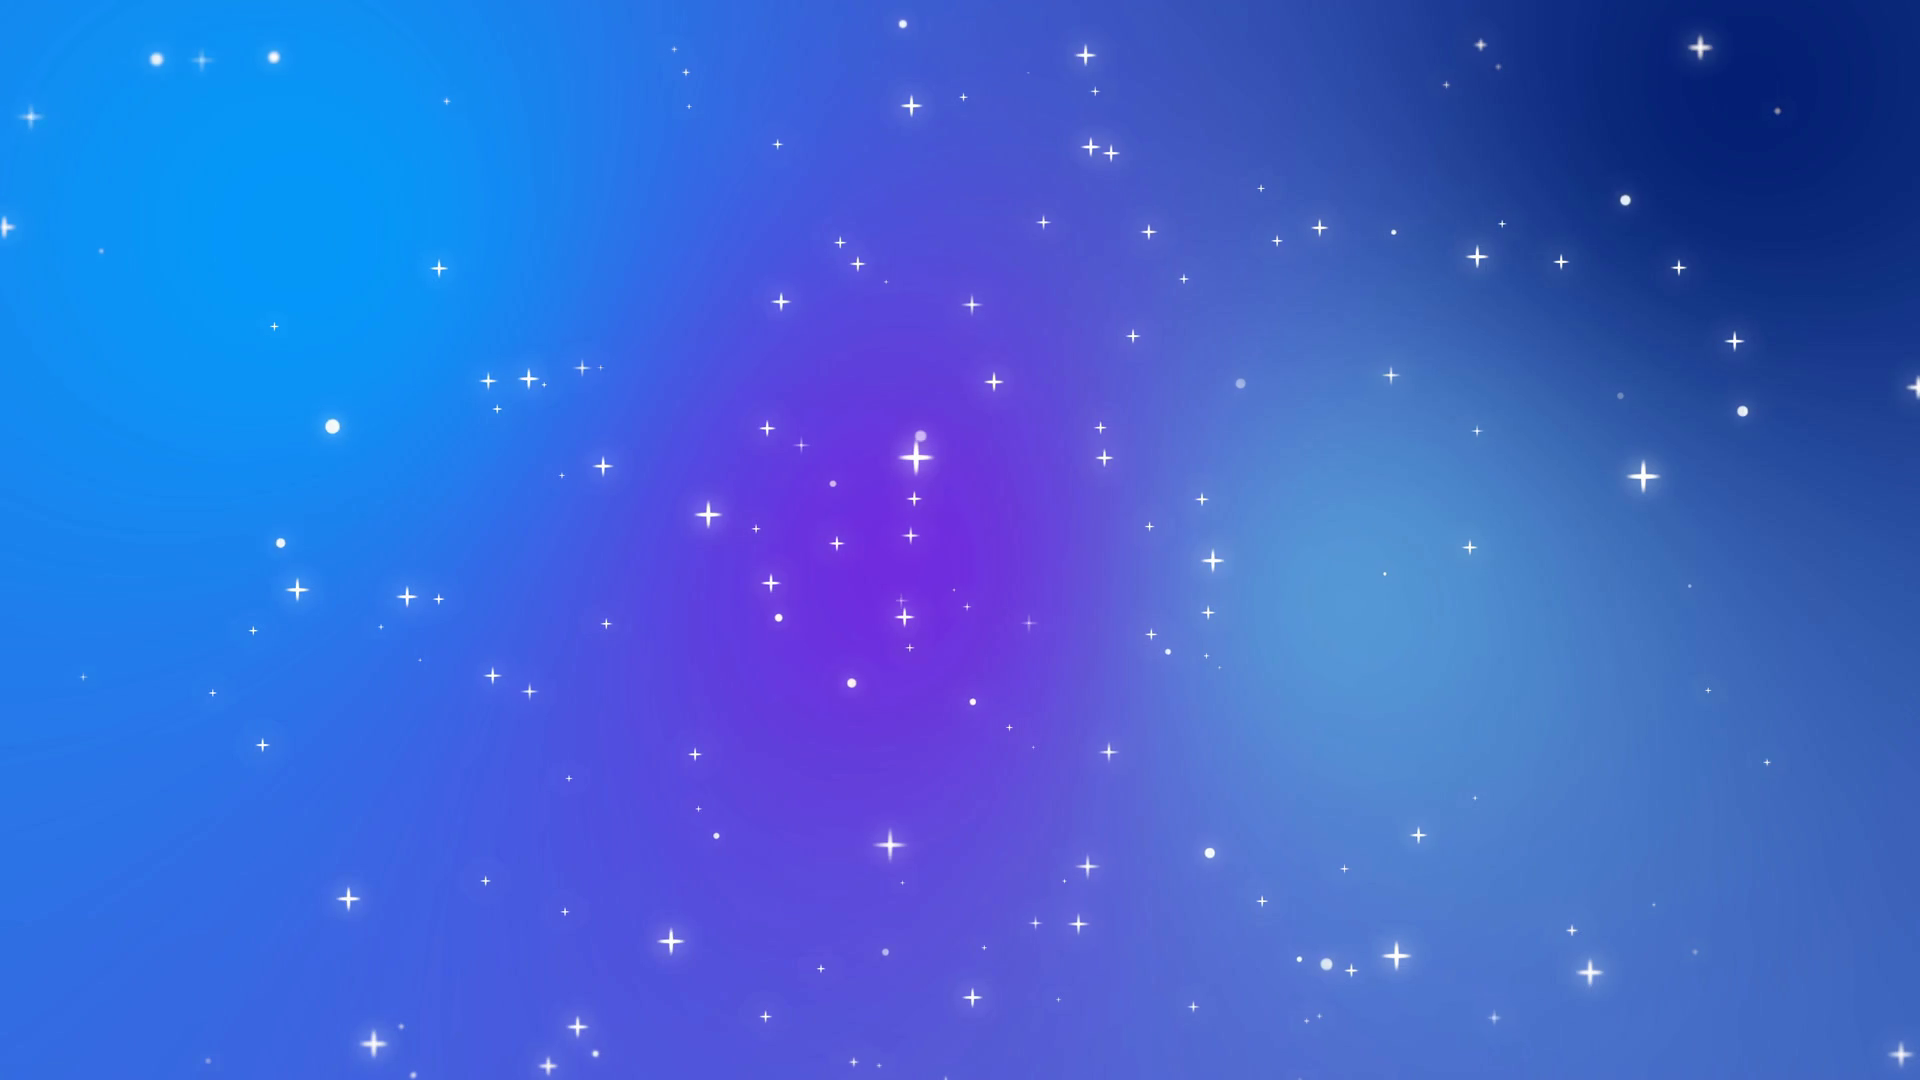 Sparkly white star light particles moving across a purple blue gradient  background imitating night sky full of stars Motion Background - VideoBlocks - Purple Star PNG HD